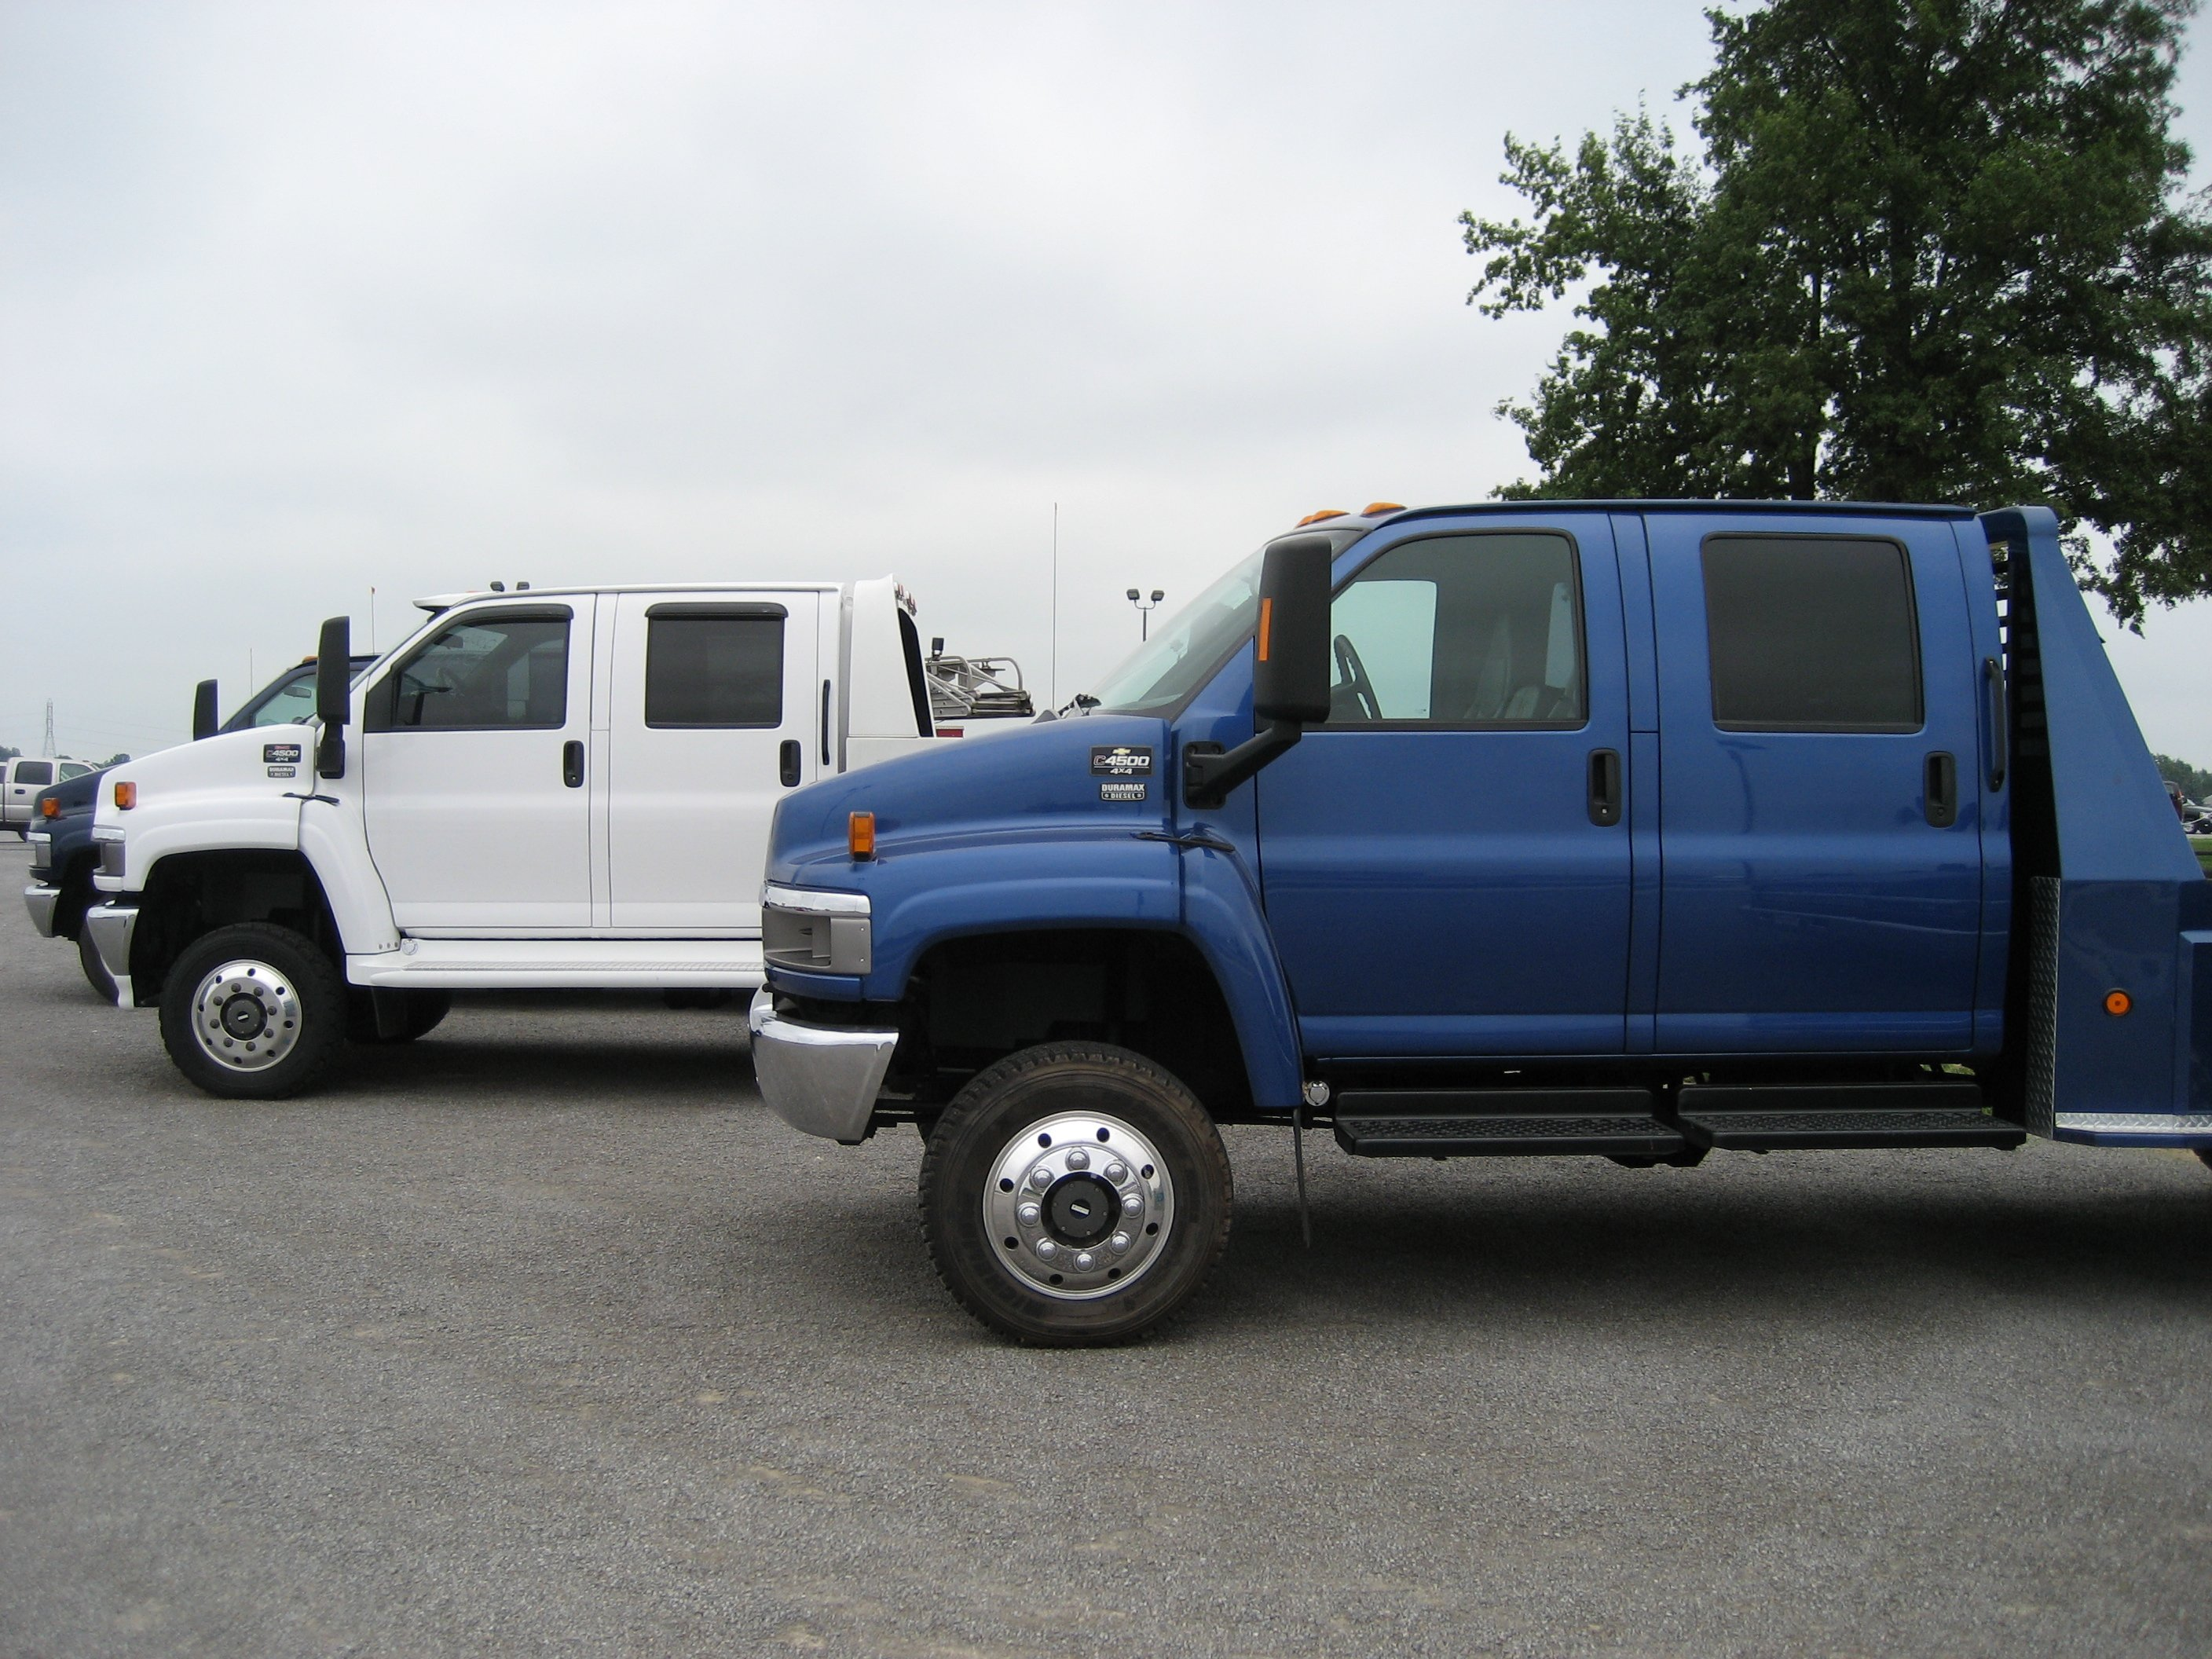 Wholesale Medium-Duty Truck Values Continue to Fall